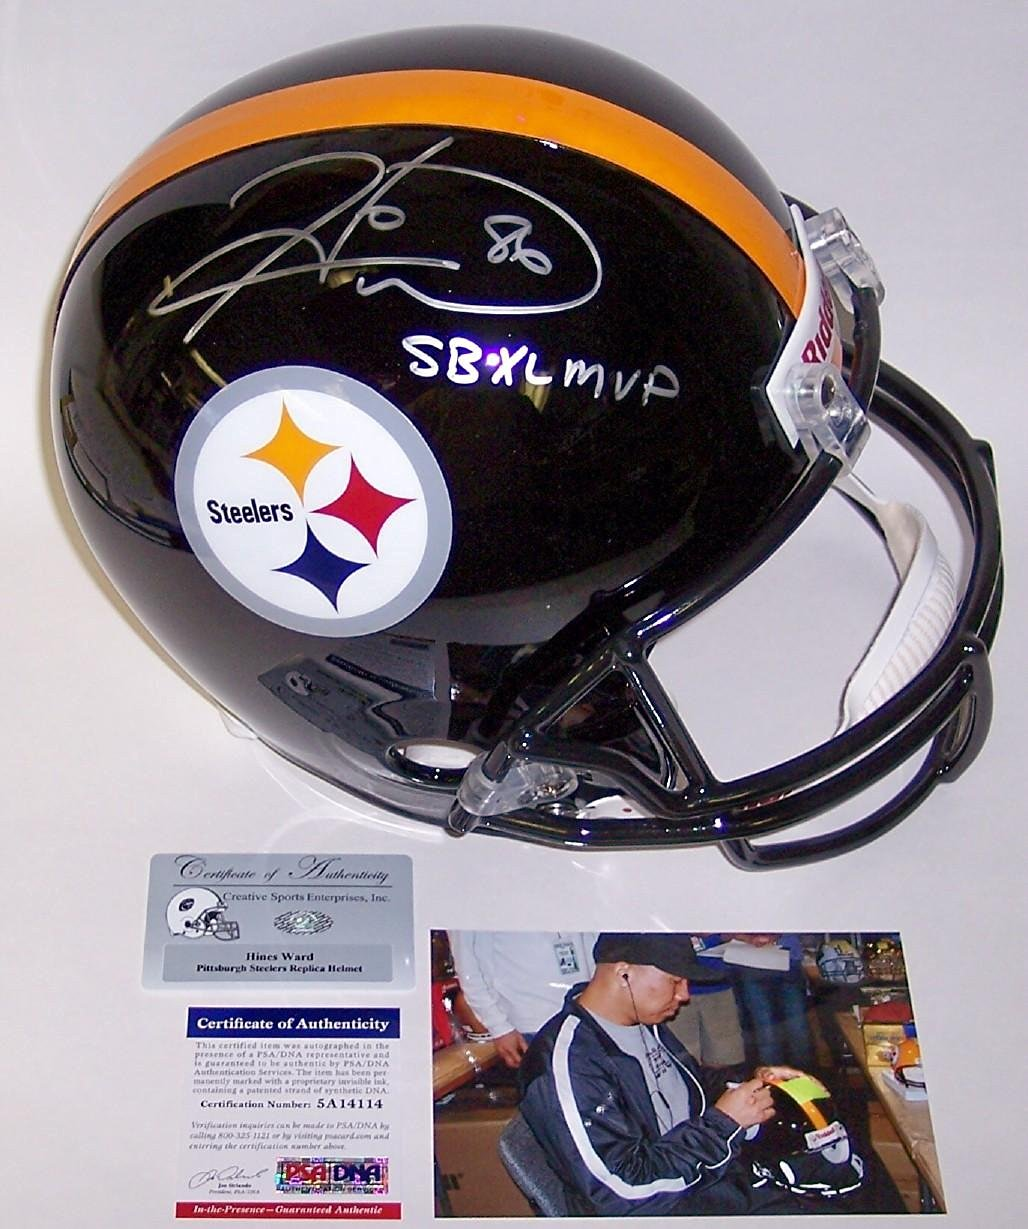 e1214aee123 Get Quotations · Hines Ward Autographed Helmet - Full Size - Autographed  NFL Helmets